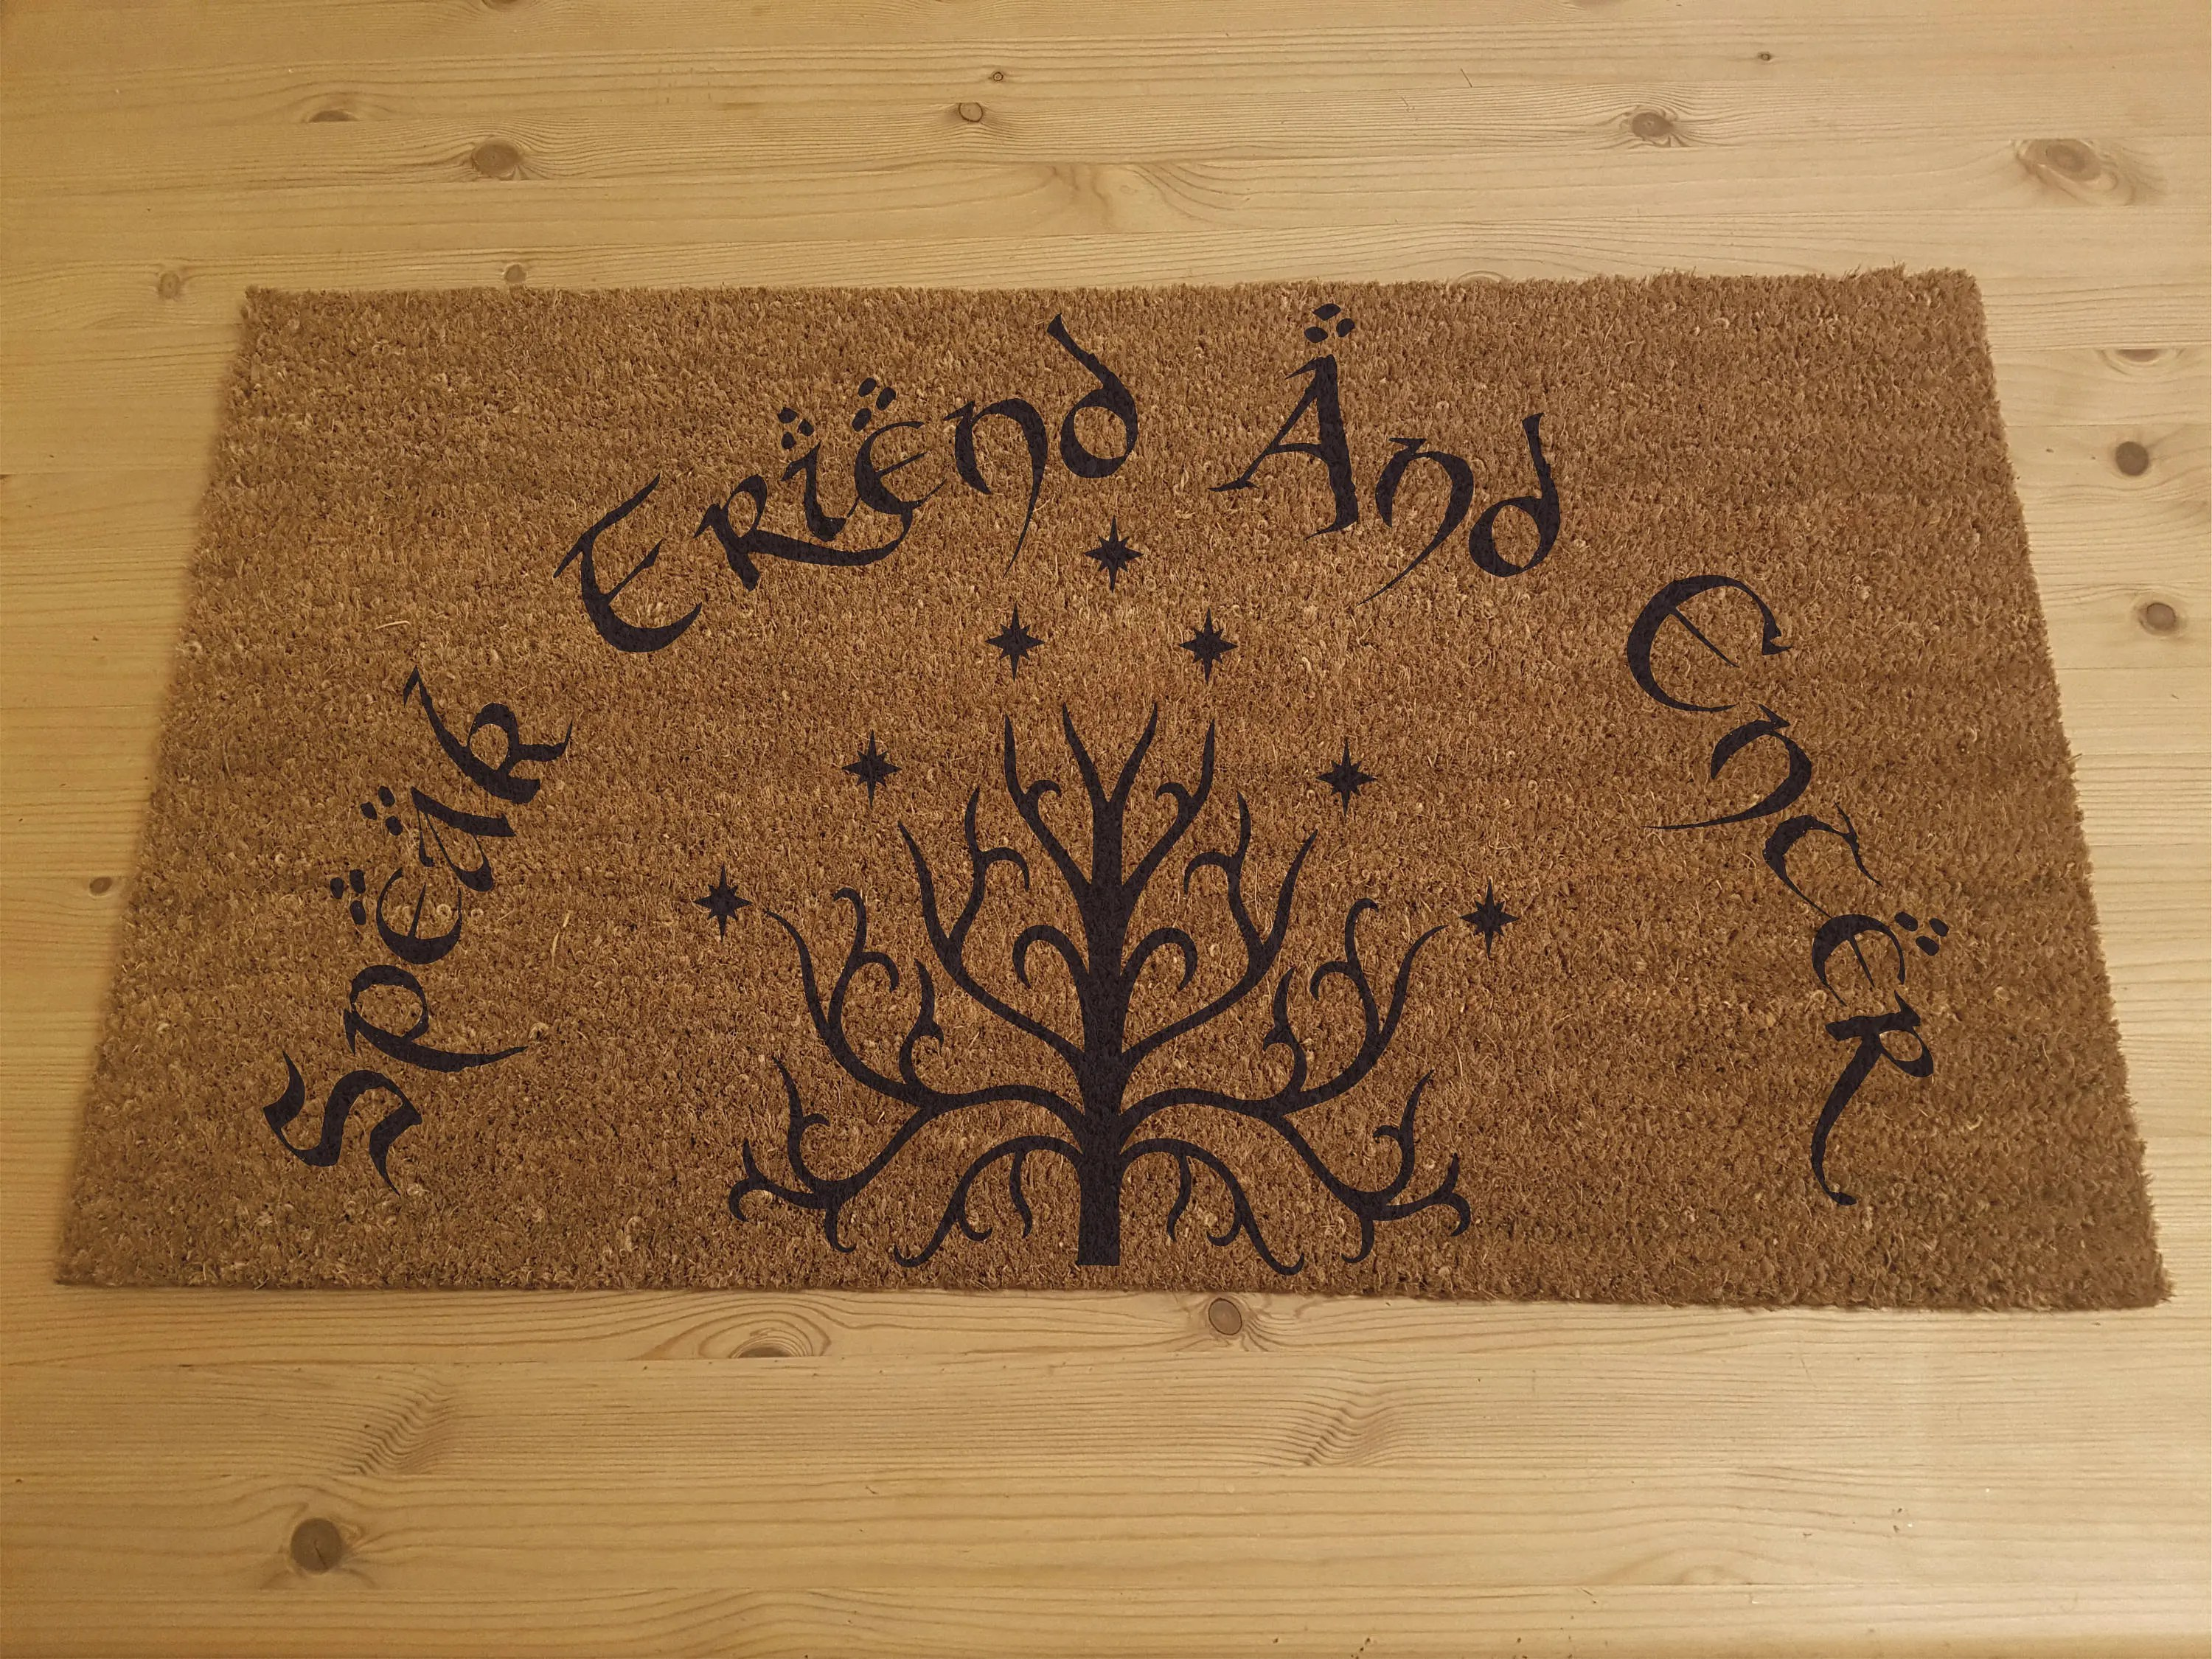 The Walking Dead Teppich Lord Of The Rings Inspired Doormat Speak Friend And Enter Tolkien With Tree Of Gandor